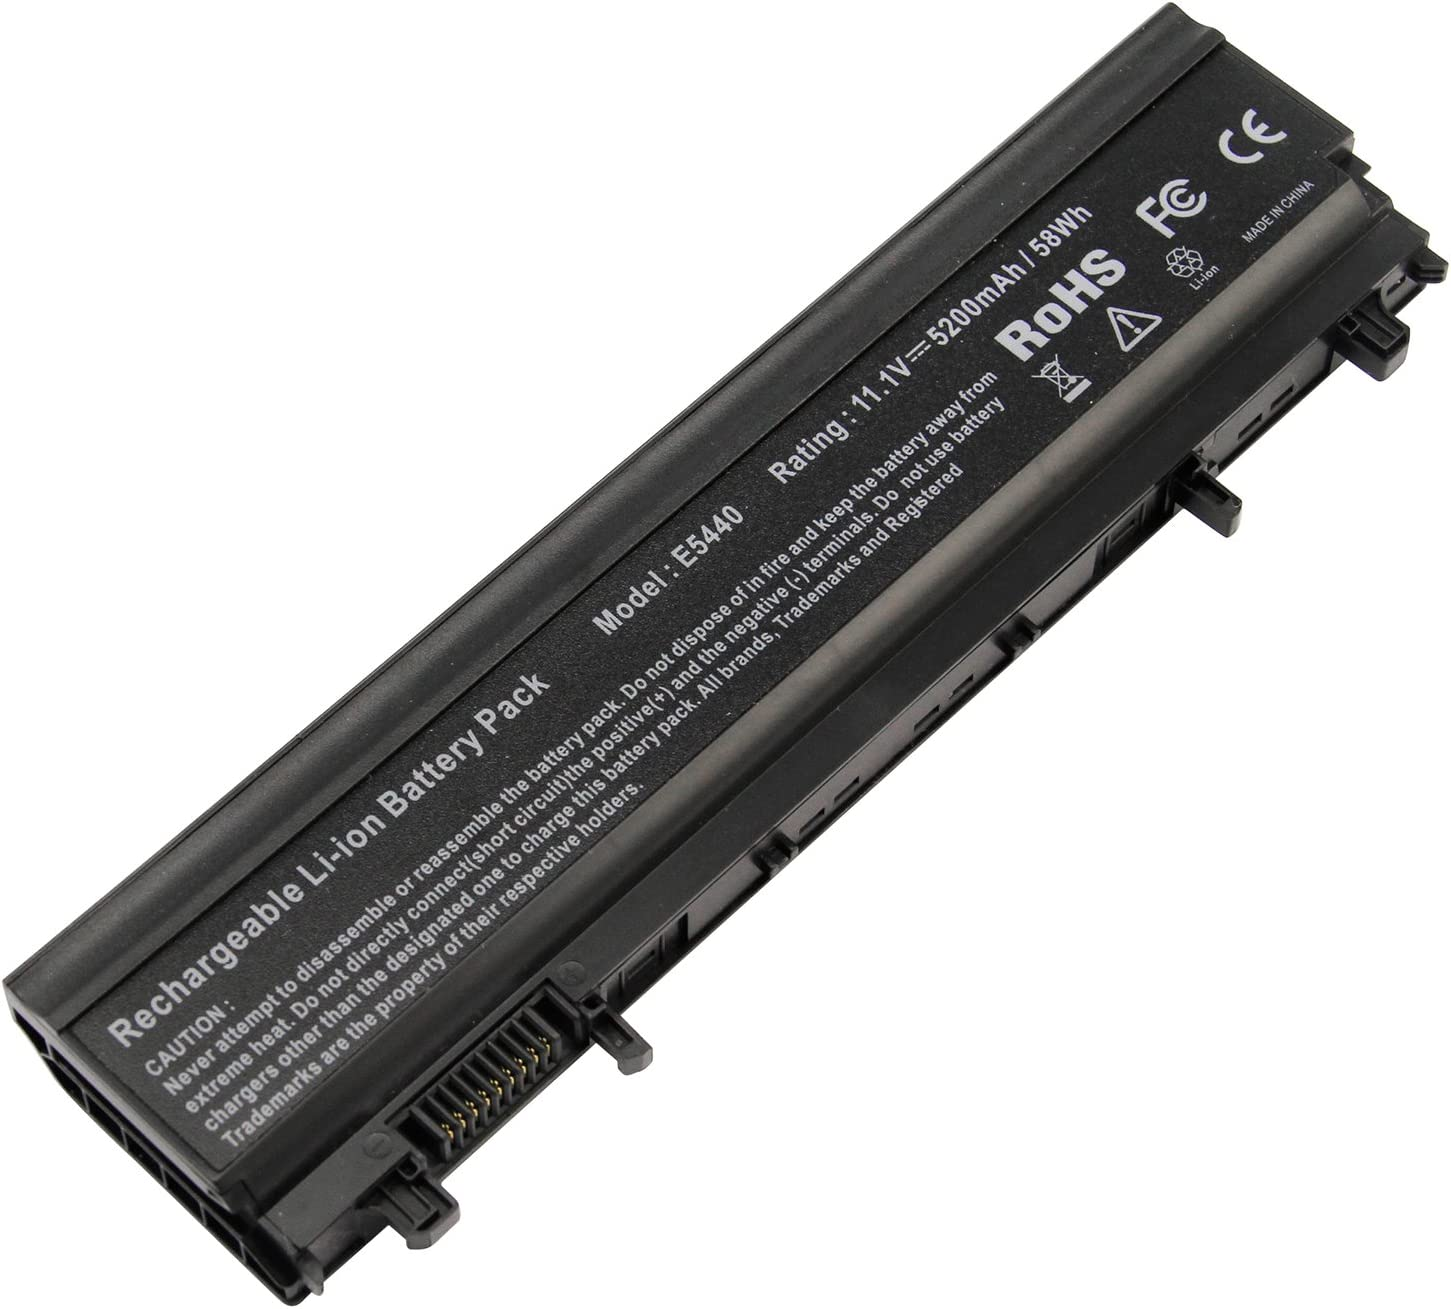 ARyee E5440 Battery Compatible with Dell Latitude E5440 E5540 Series, fit N5YH9 WGCW6 1N9C0 F49WX 0M7T5F(5200mAh 11.1V)